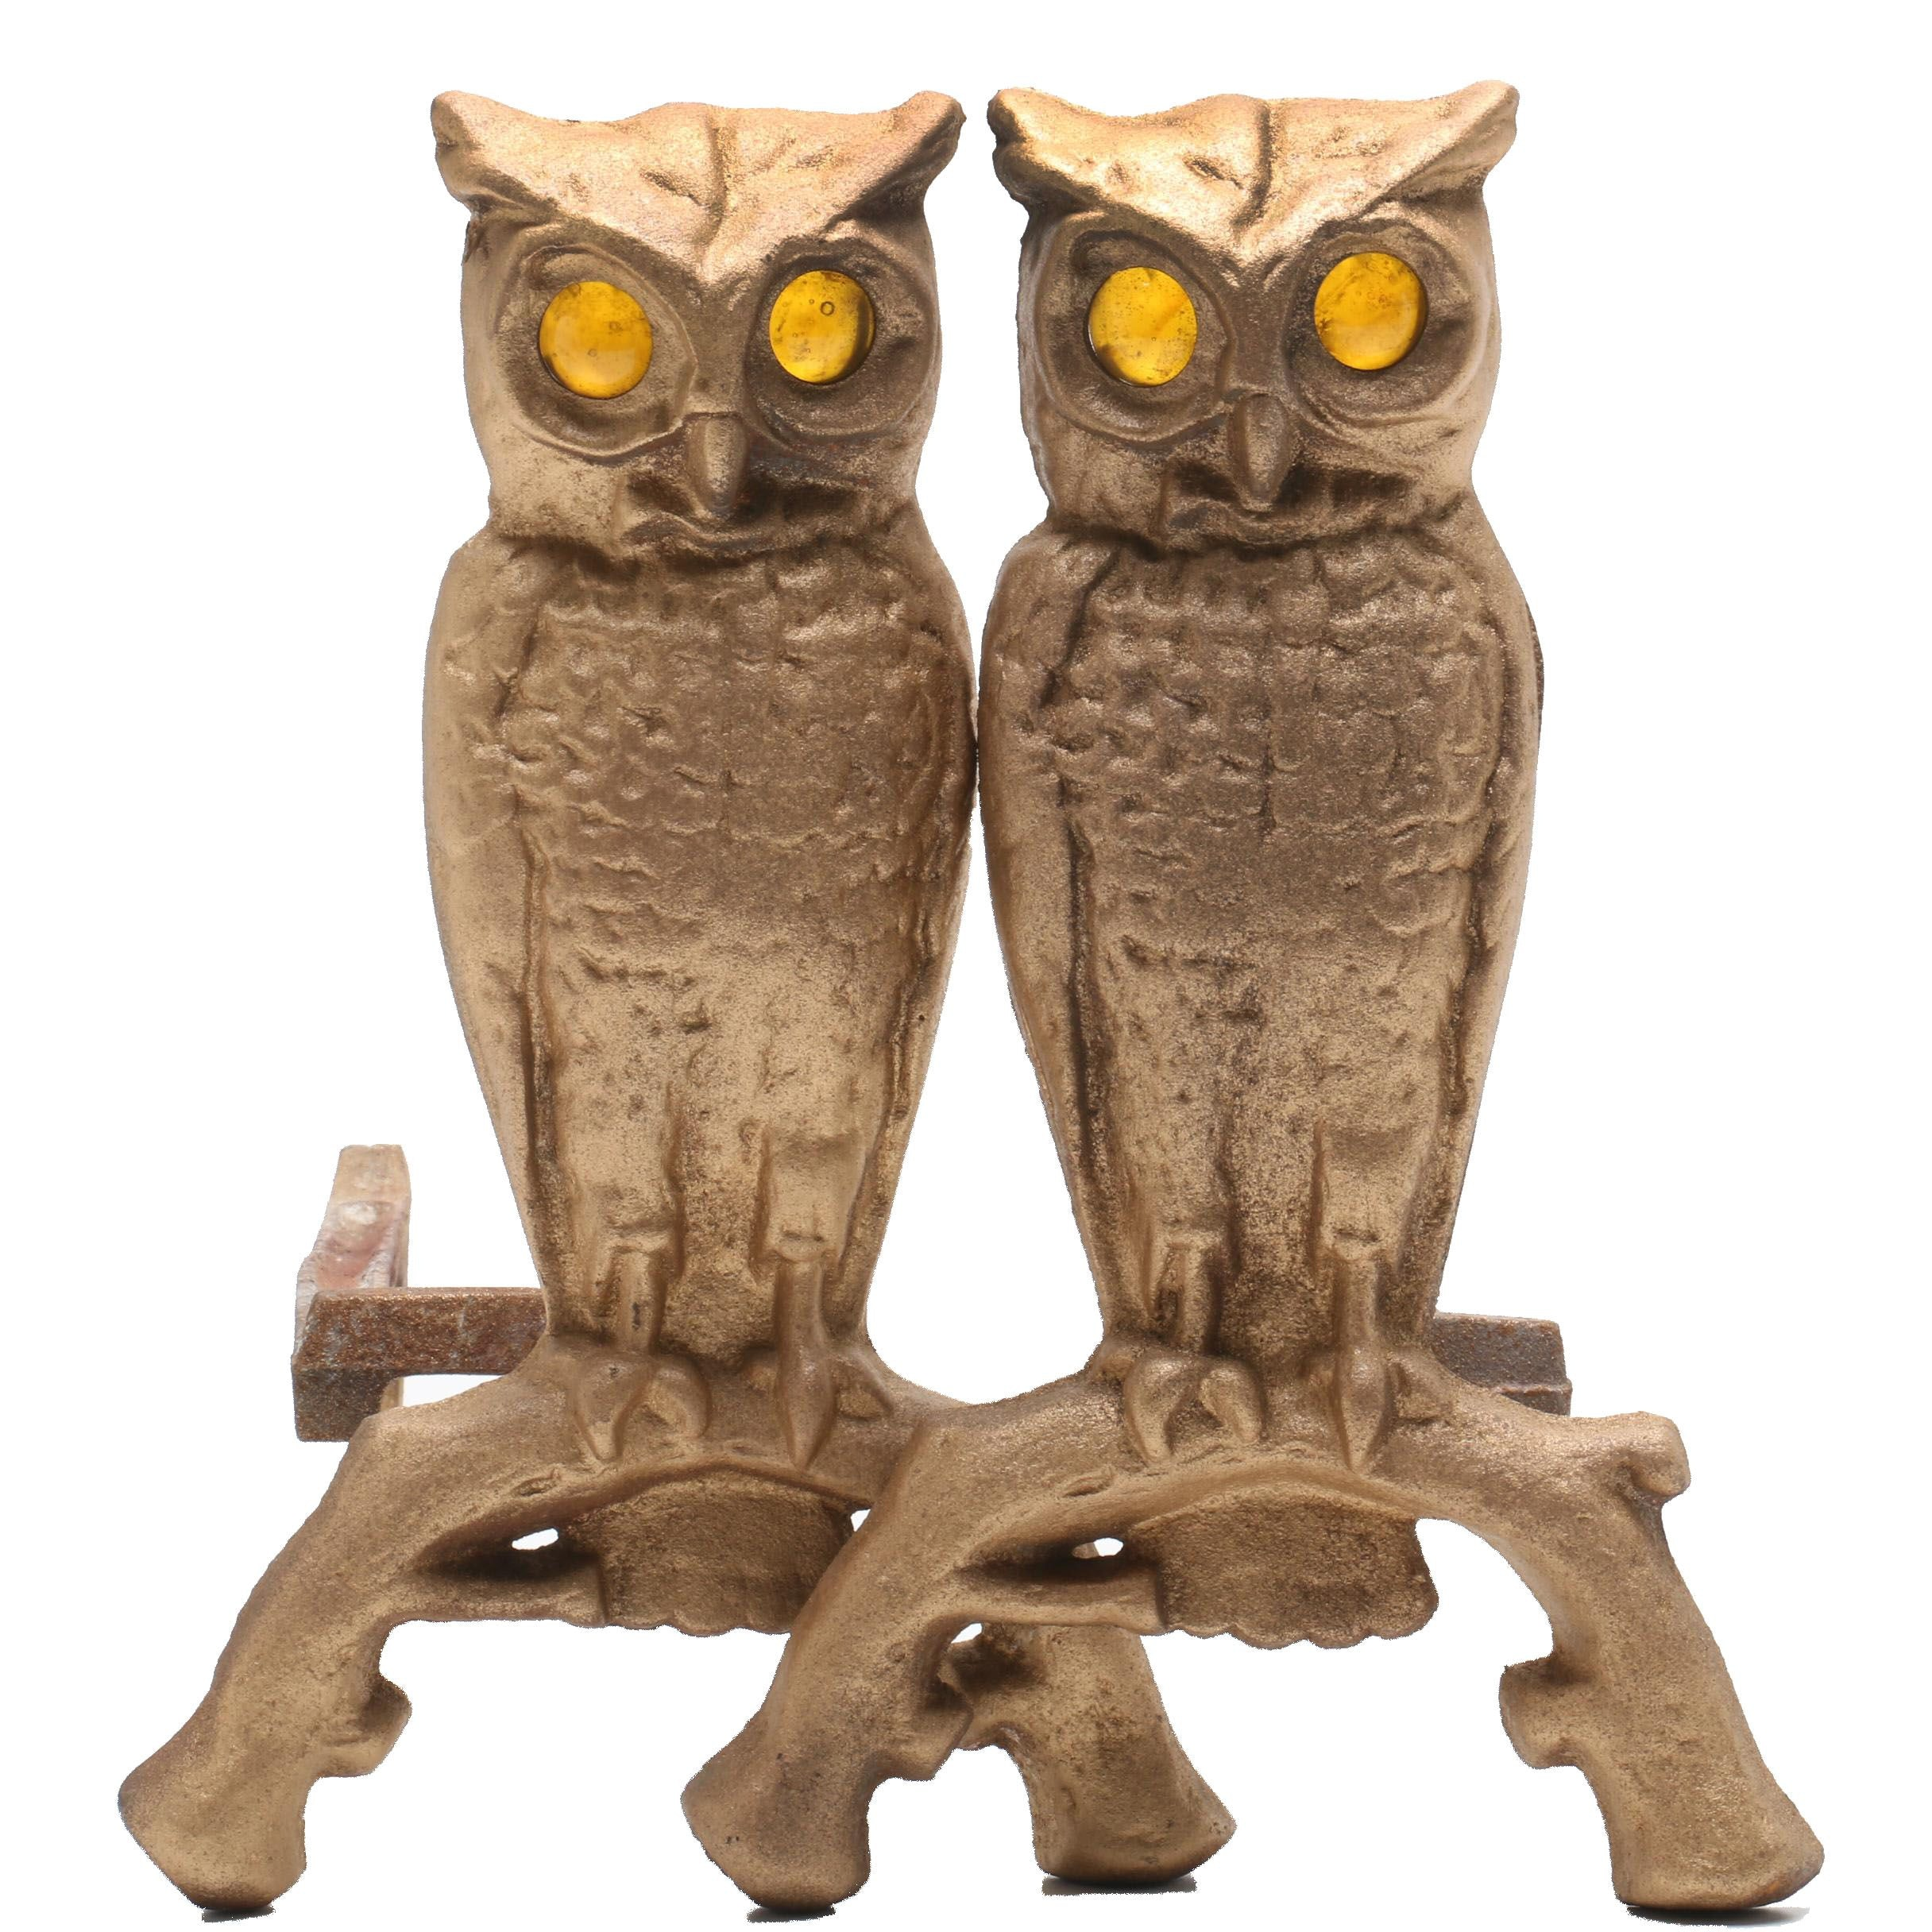 Cast Owl Andirons with Glass Eyes, circa 1930